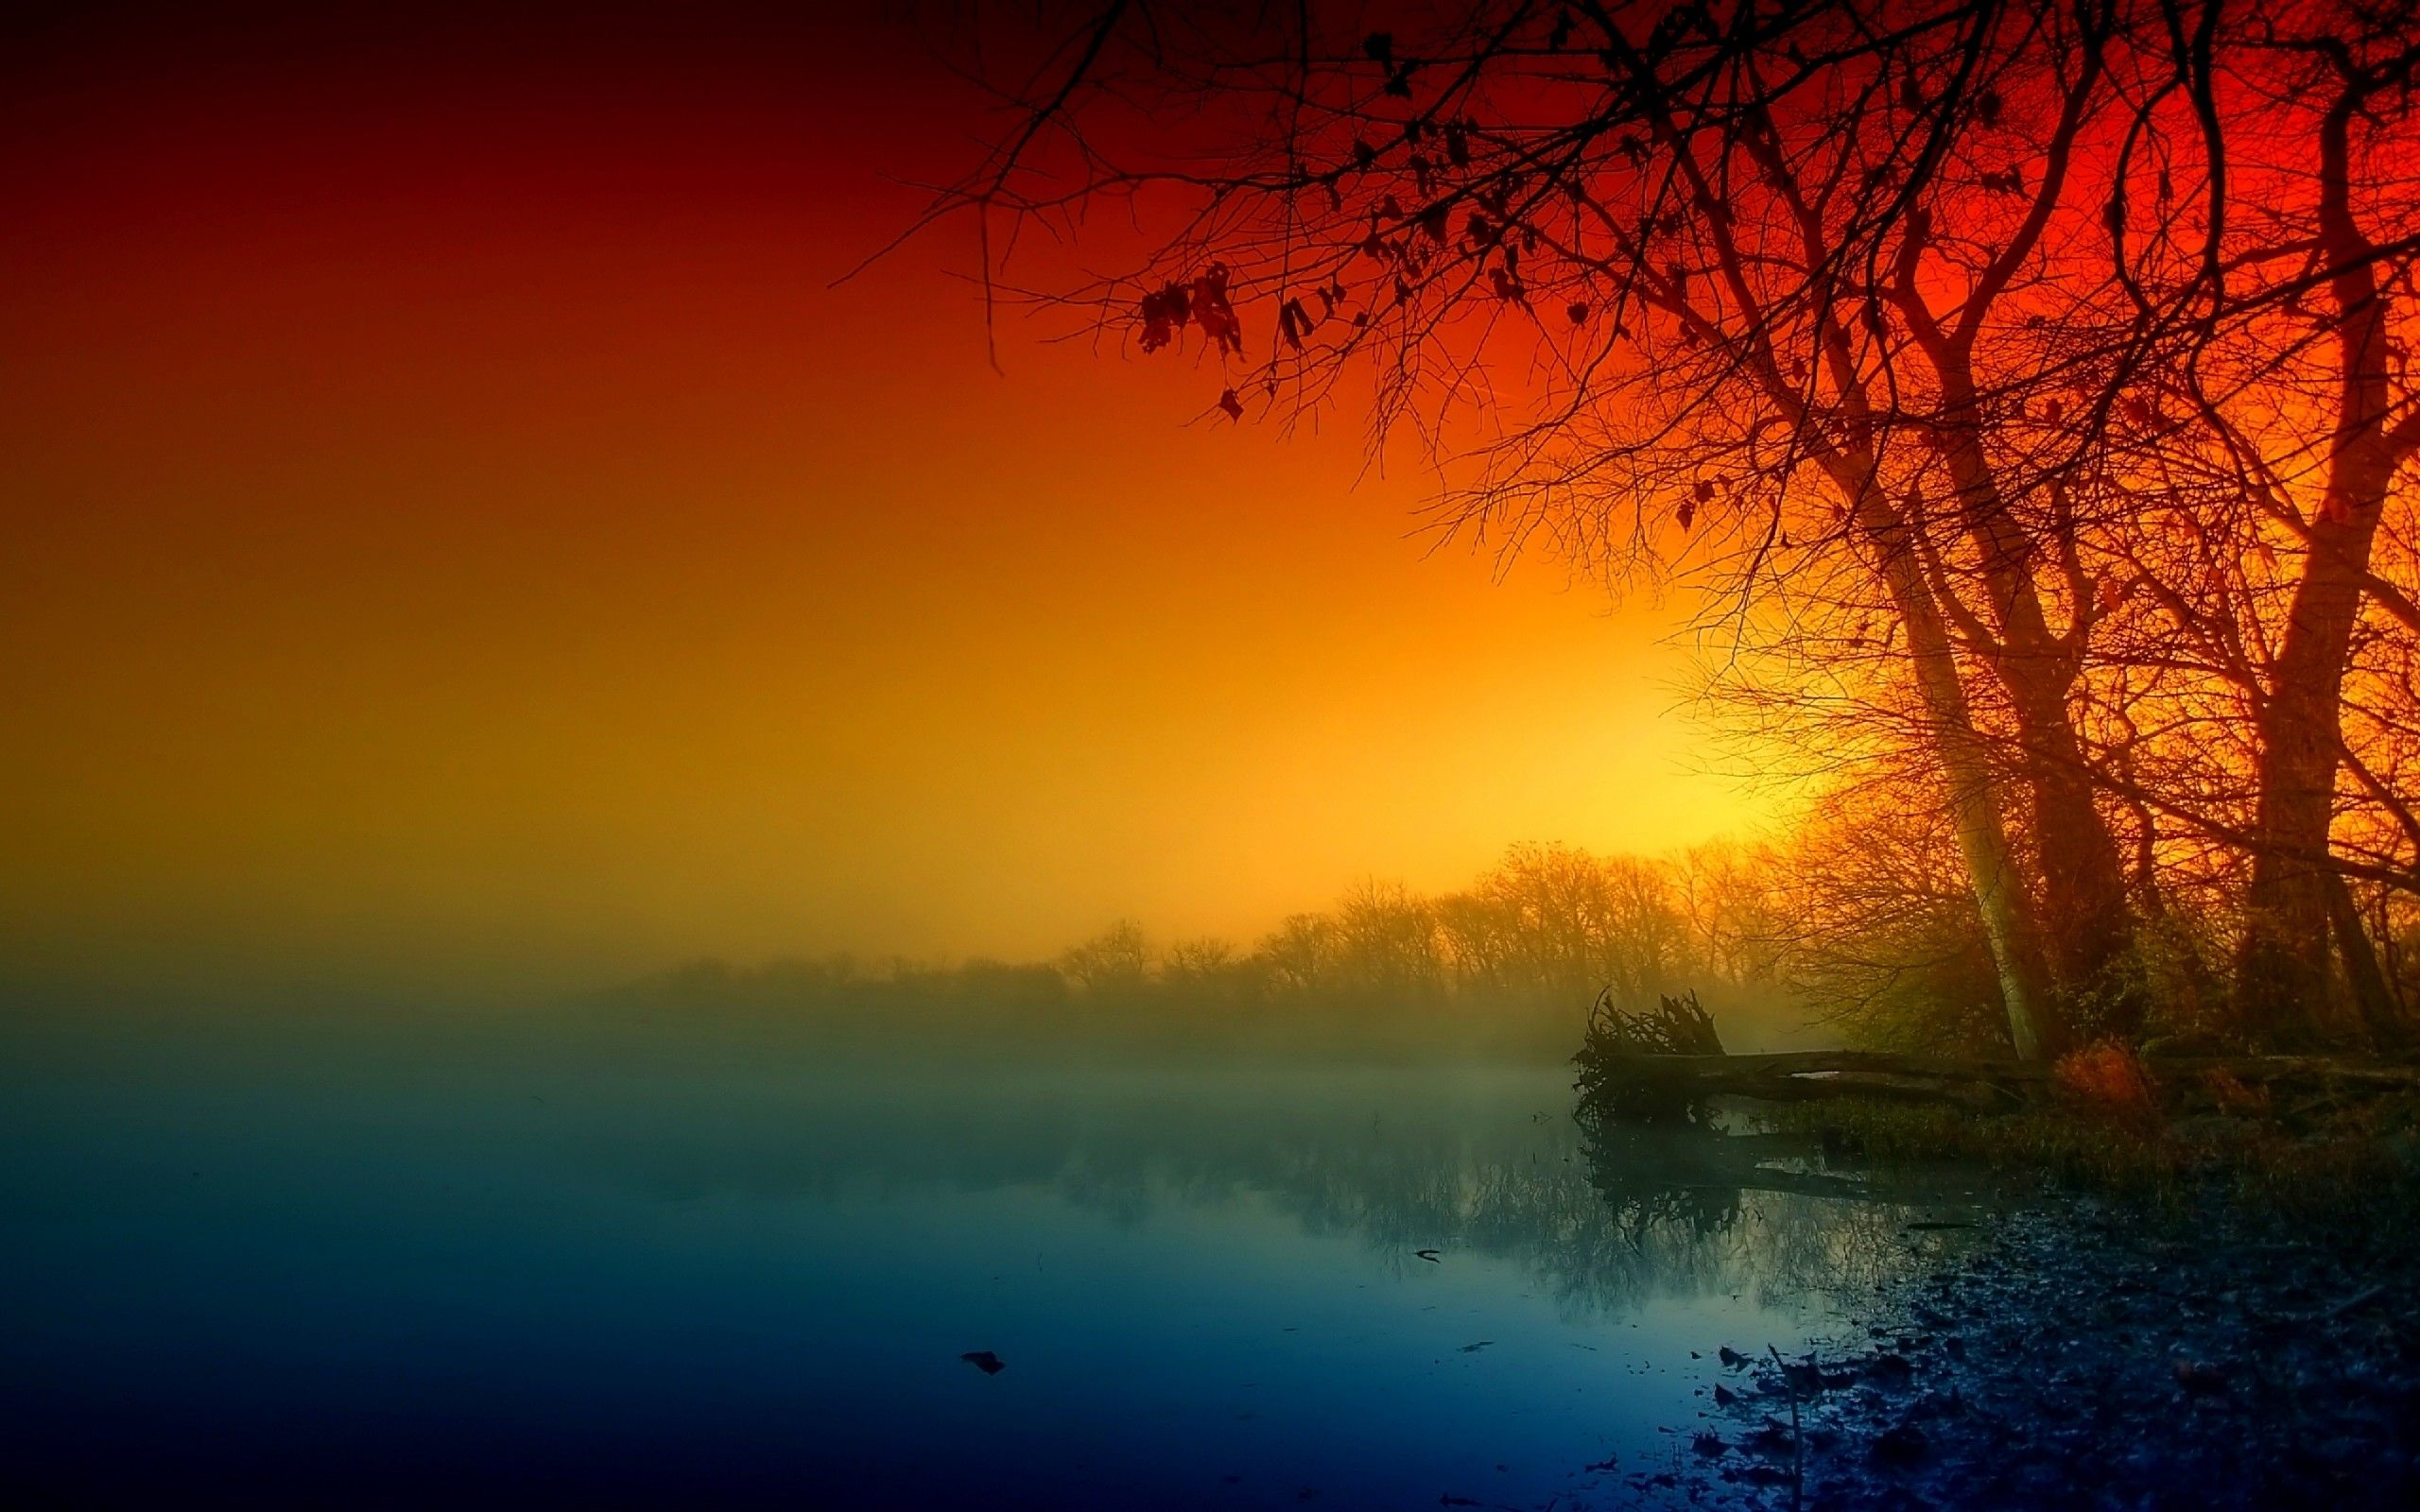 Colorful Sunset Scenery Jpg 2560 1600 Scenic Pictures Scenic Wallpaper Hd Nature Wallpapers